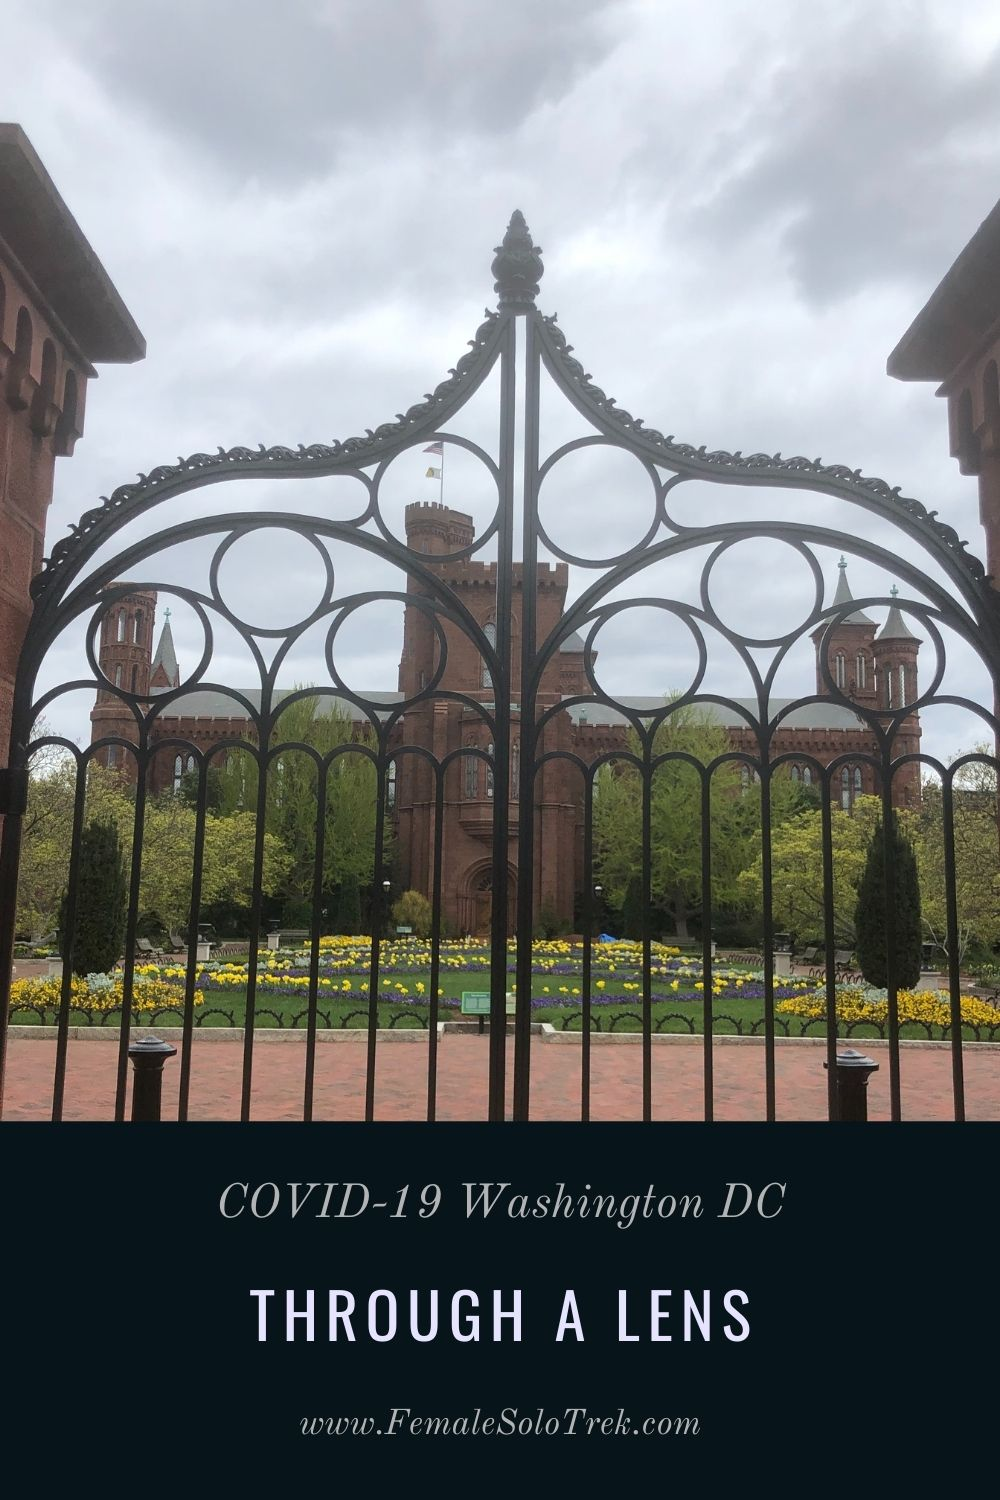 I attempted to capture the desolation of a deserted city through COVID-19 Washington DC Through A Lens.